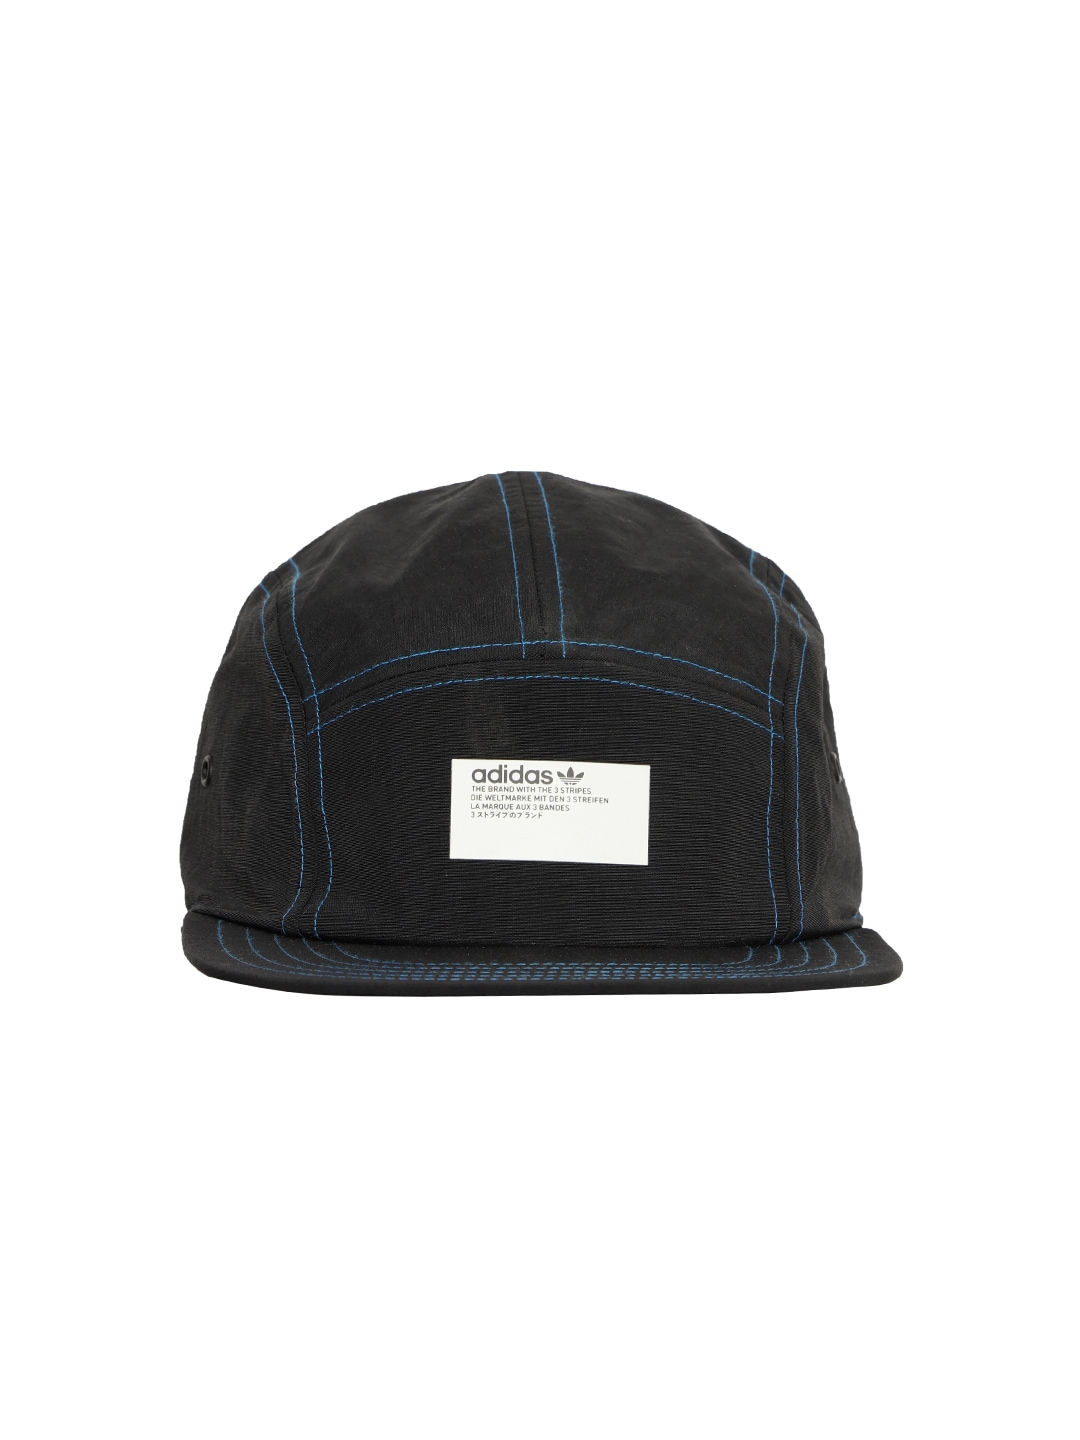 dd5471a3f69da Adidas Cap - Buy Adidas Caps for Women   Girls Online